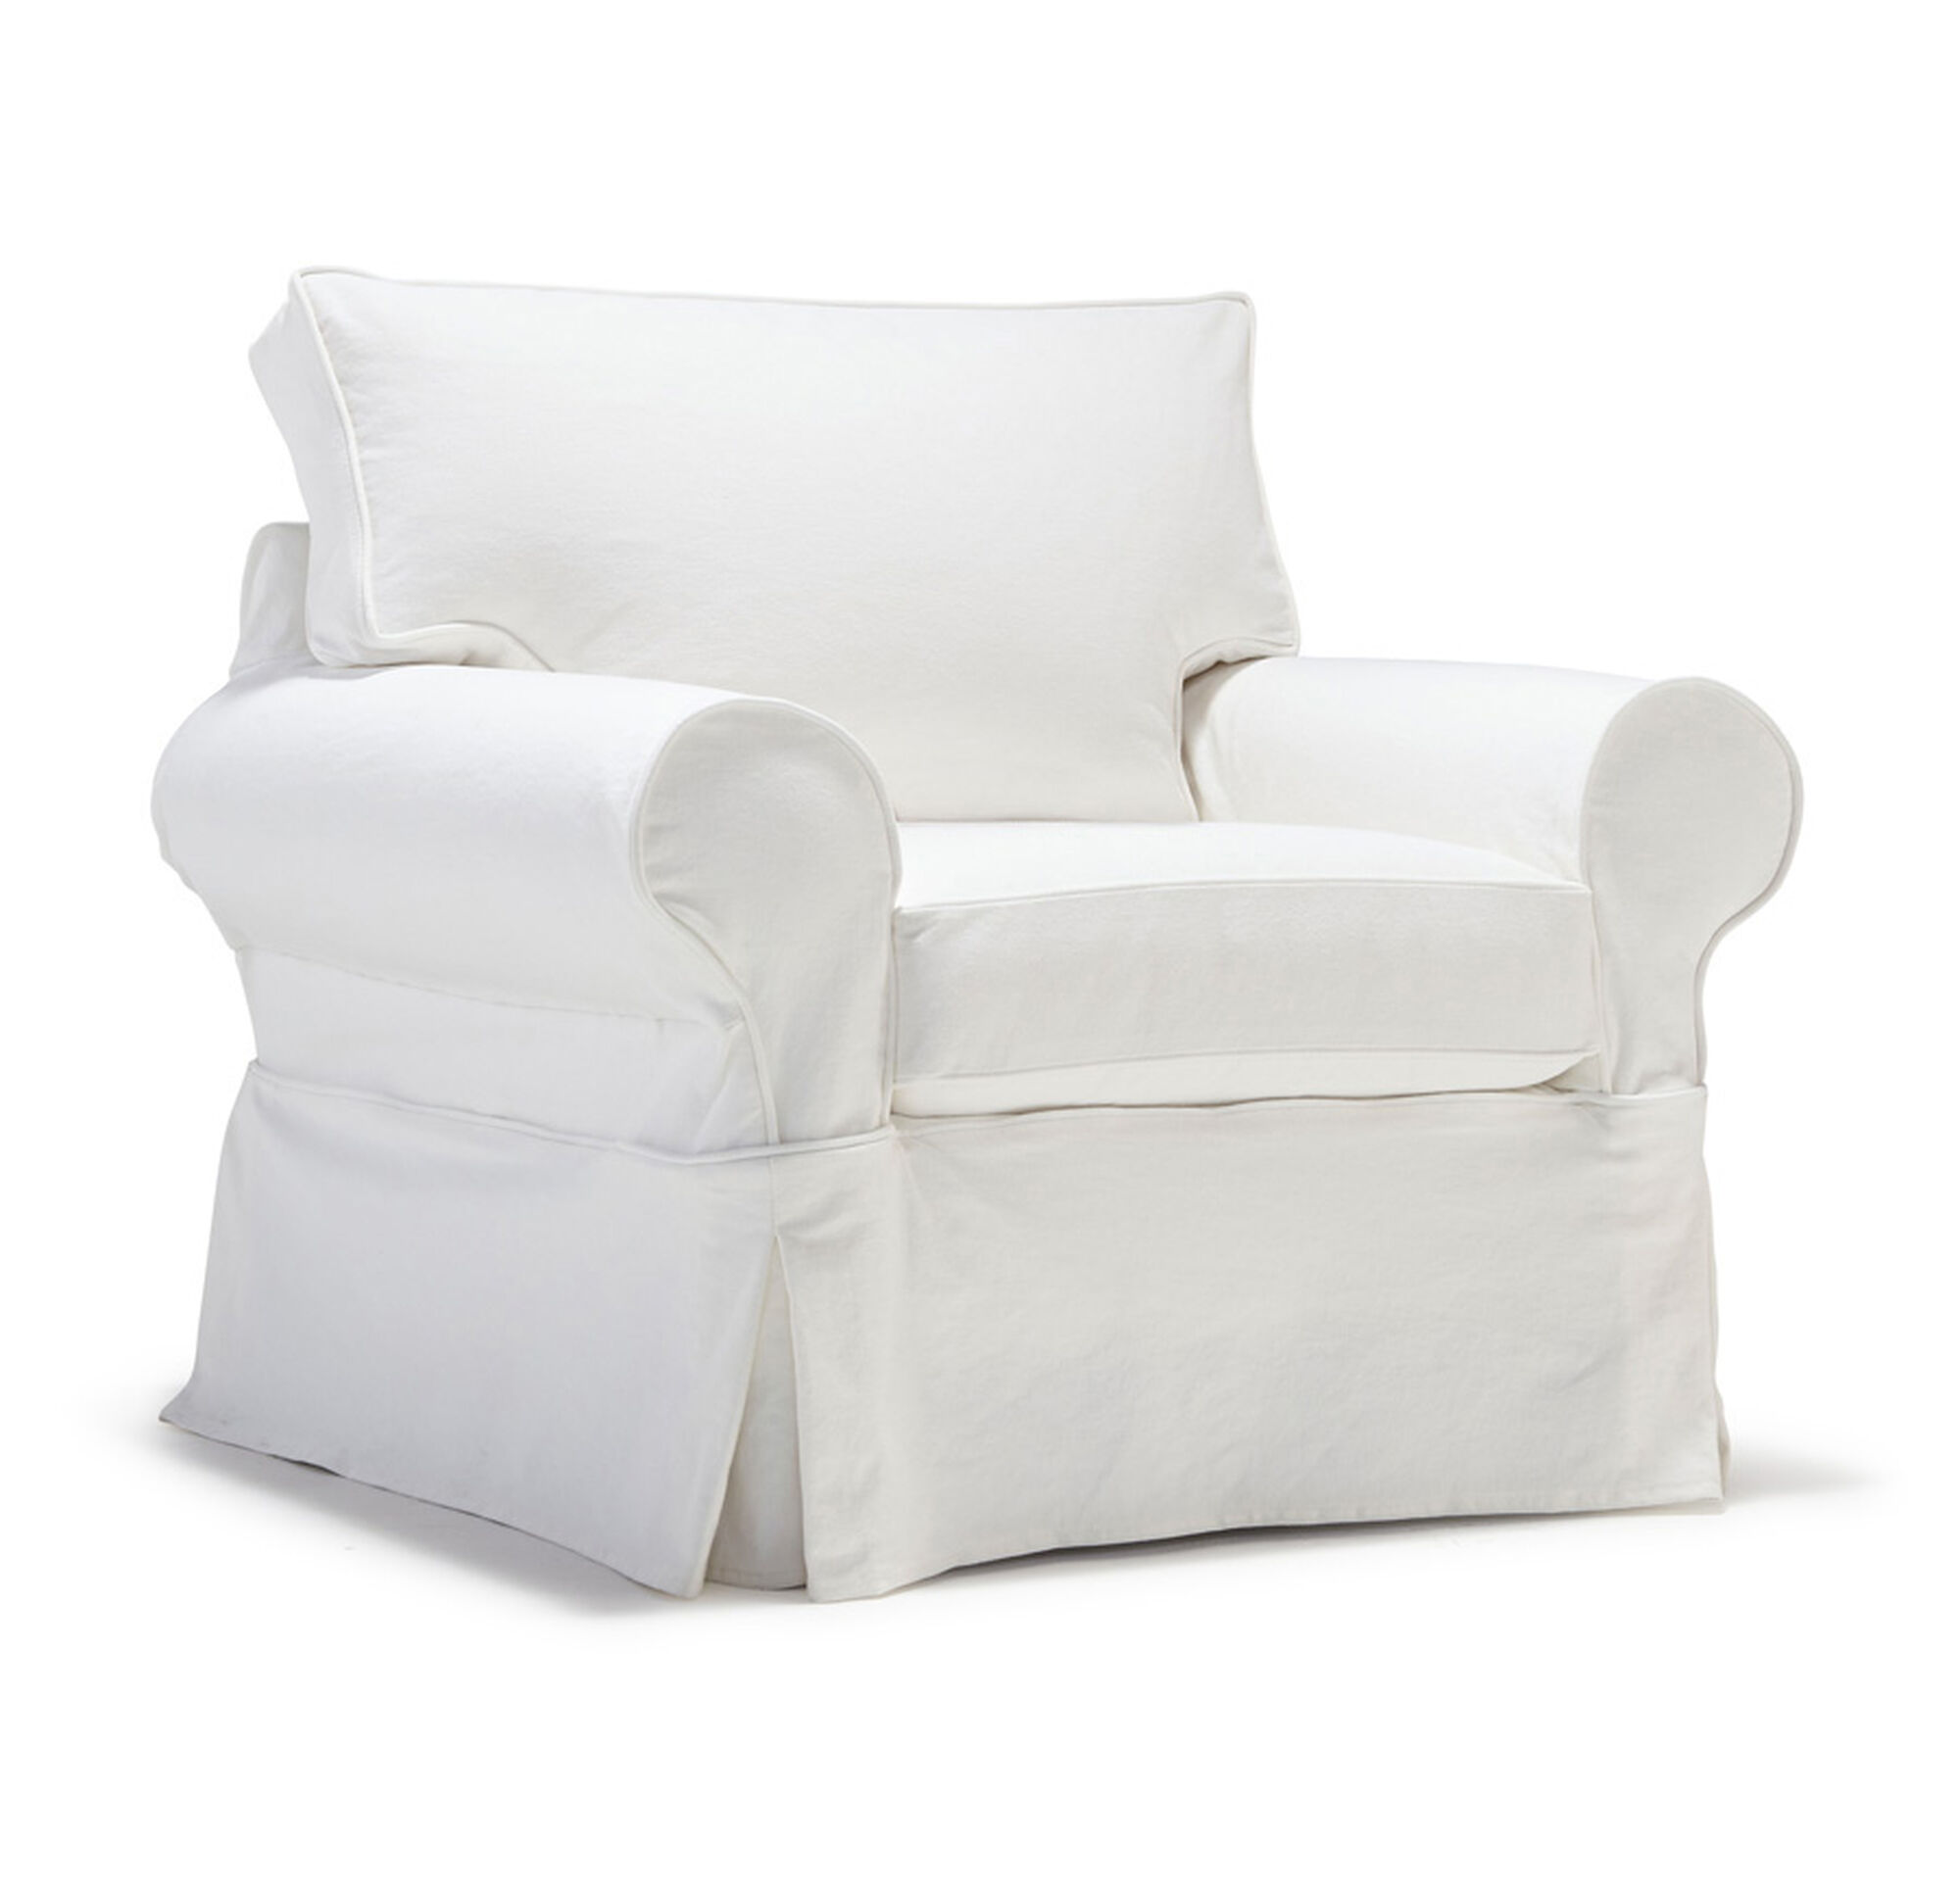 storm chairs dorm chair product suite slipcover